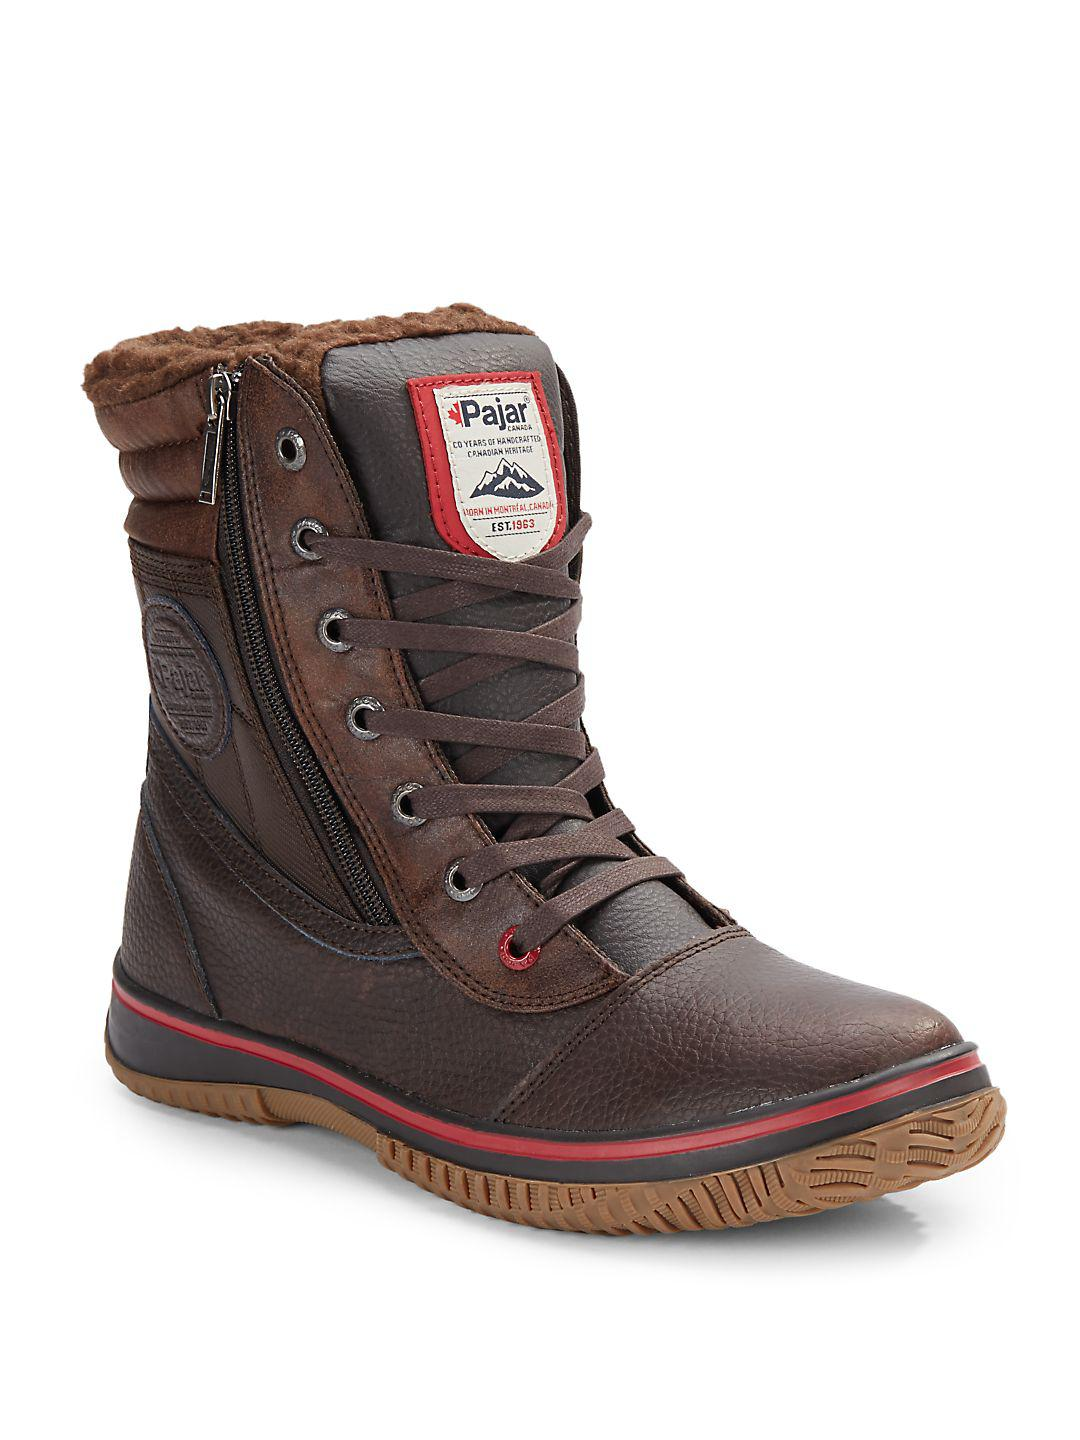 Pajar Tour Waterproof Leather Boots in